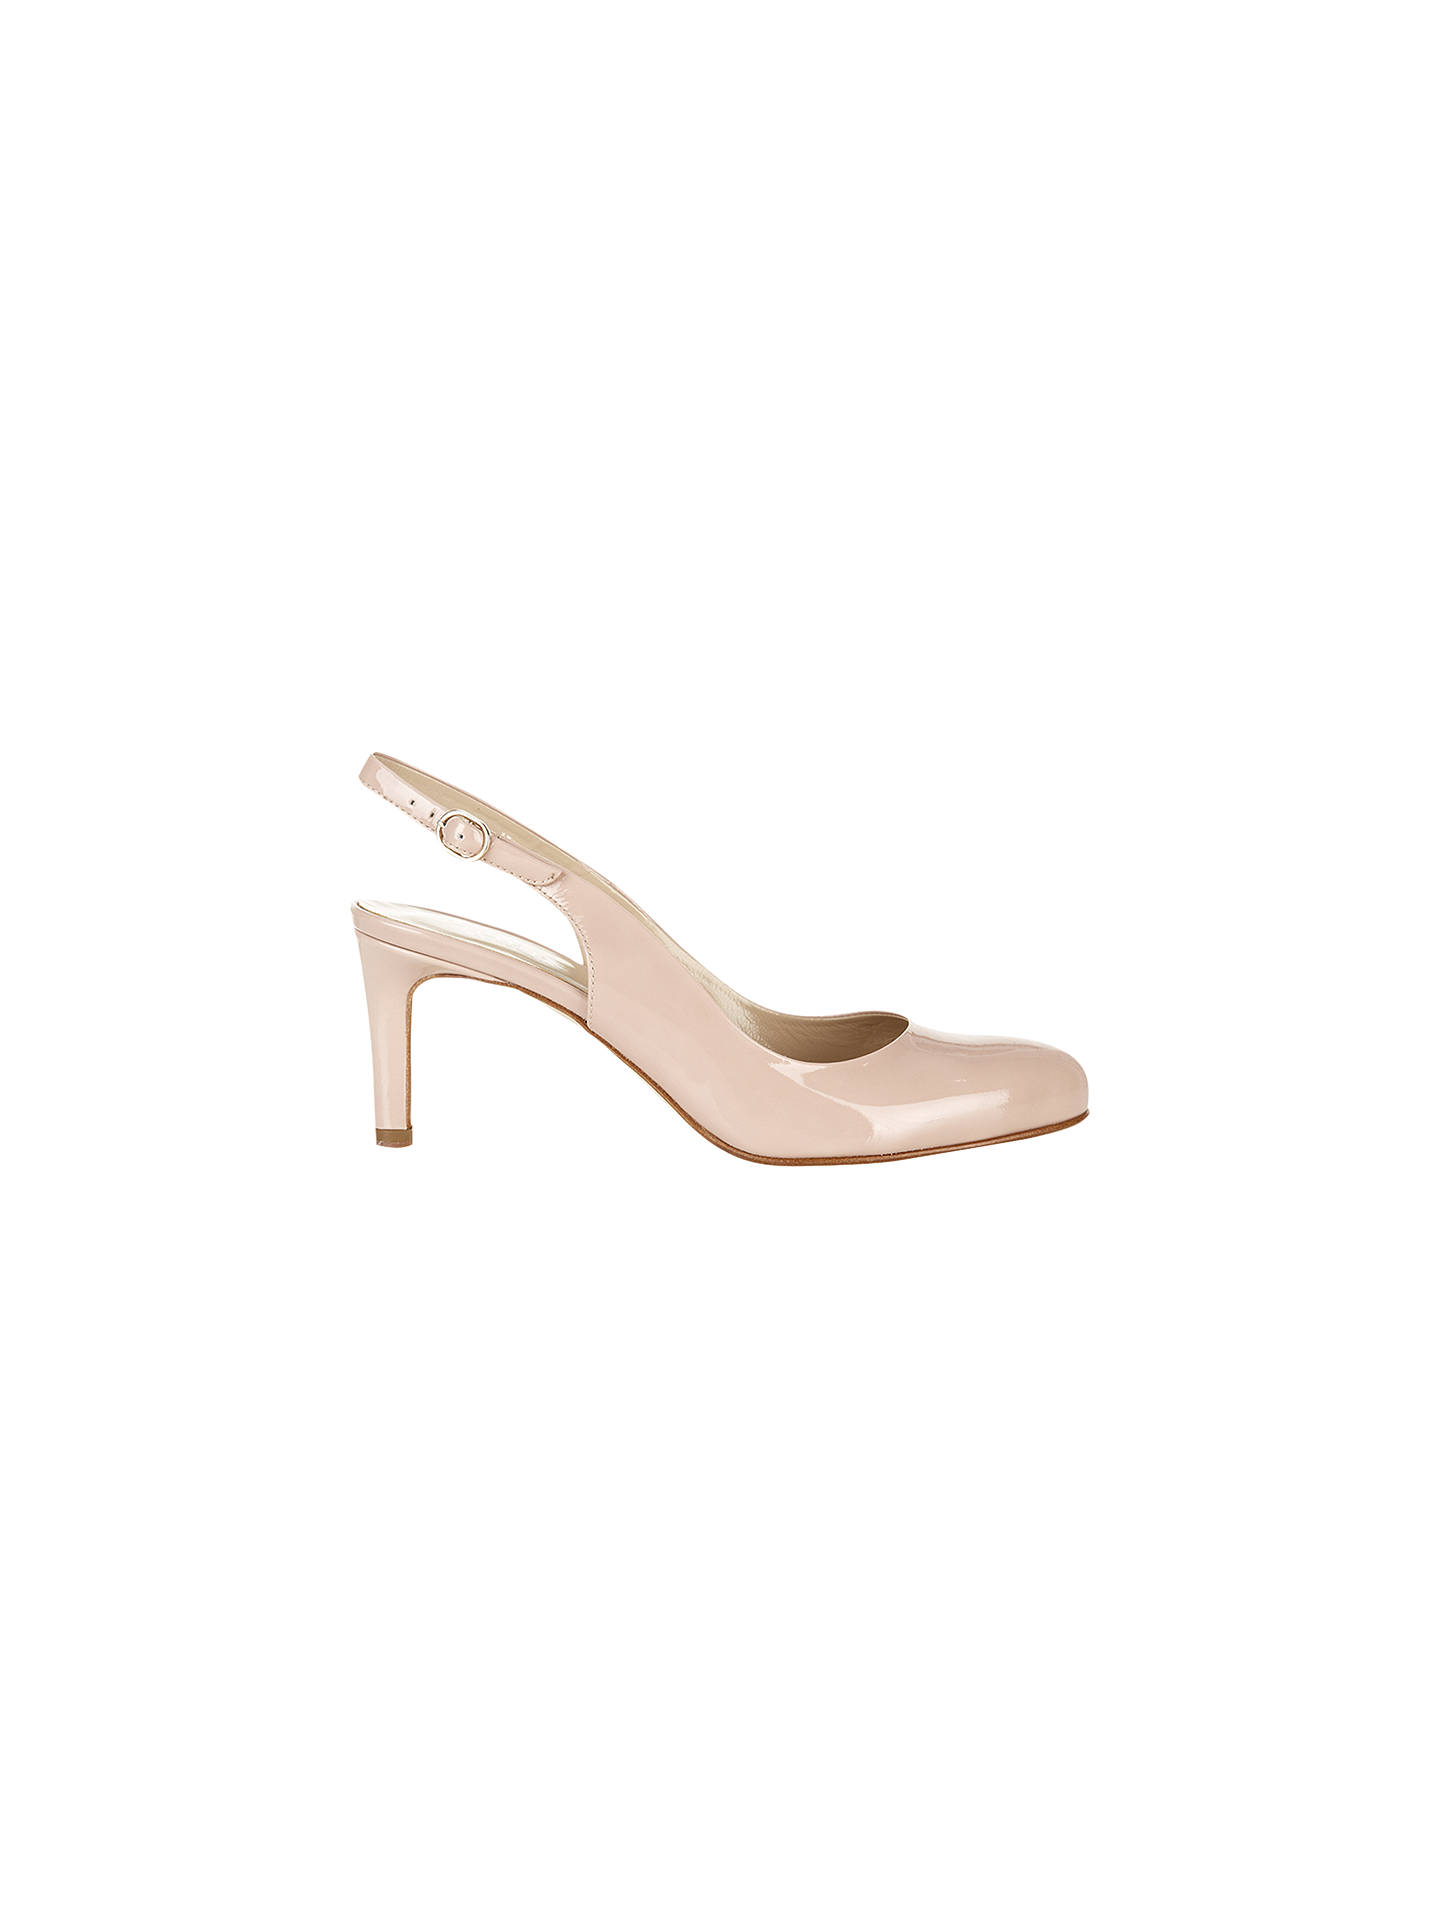 4dcc21f26 Hobbs Lizzie Slingback Court Shoes at John Lewis   Partners